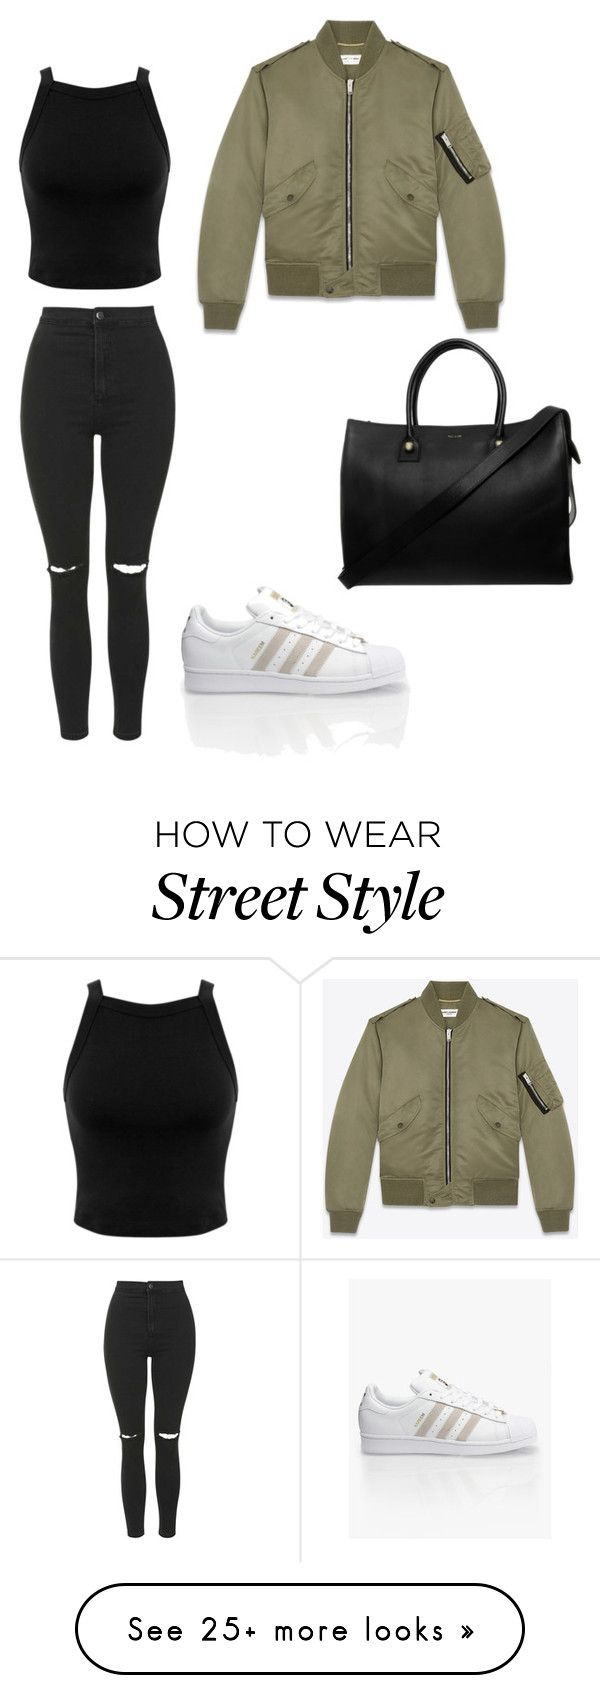 """street style"" by noemiemuslewski-1 on Polyvore featuring Topshop, Miss Selfridge, Yves Saint Laurent, Paul & Joe and adidas"